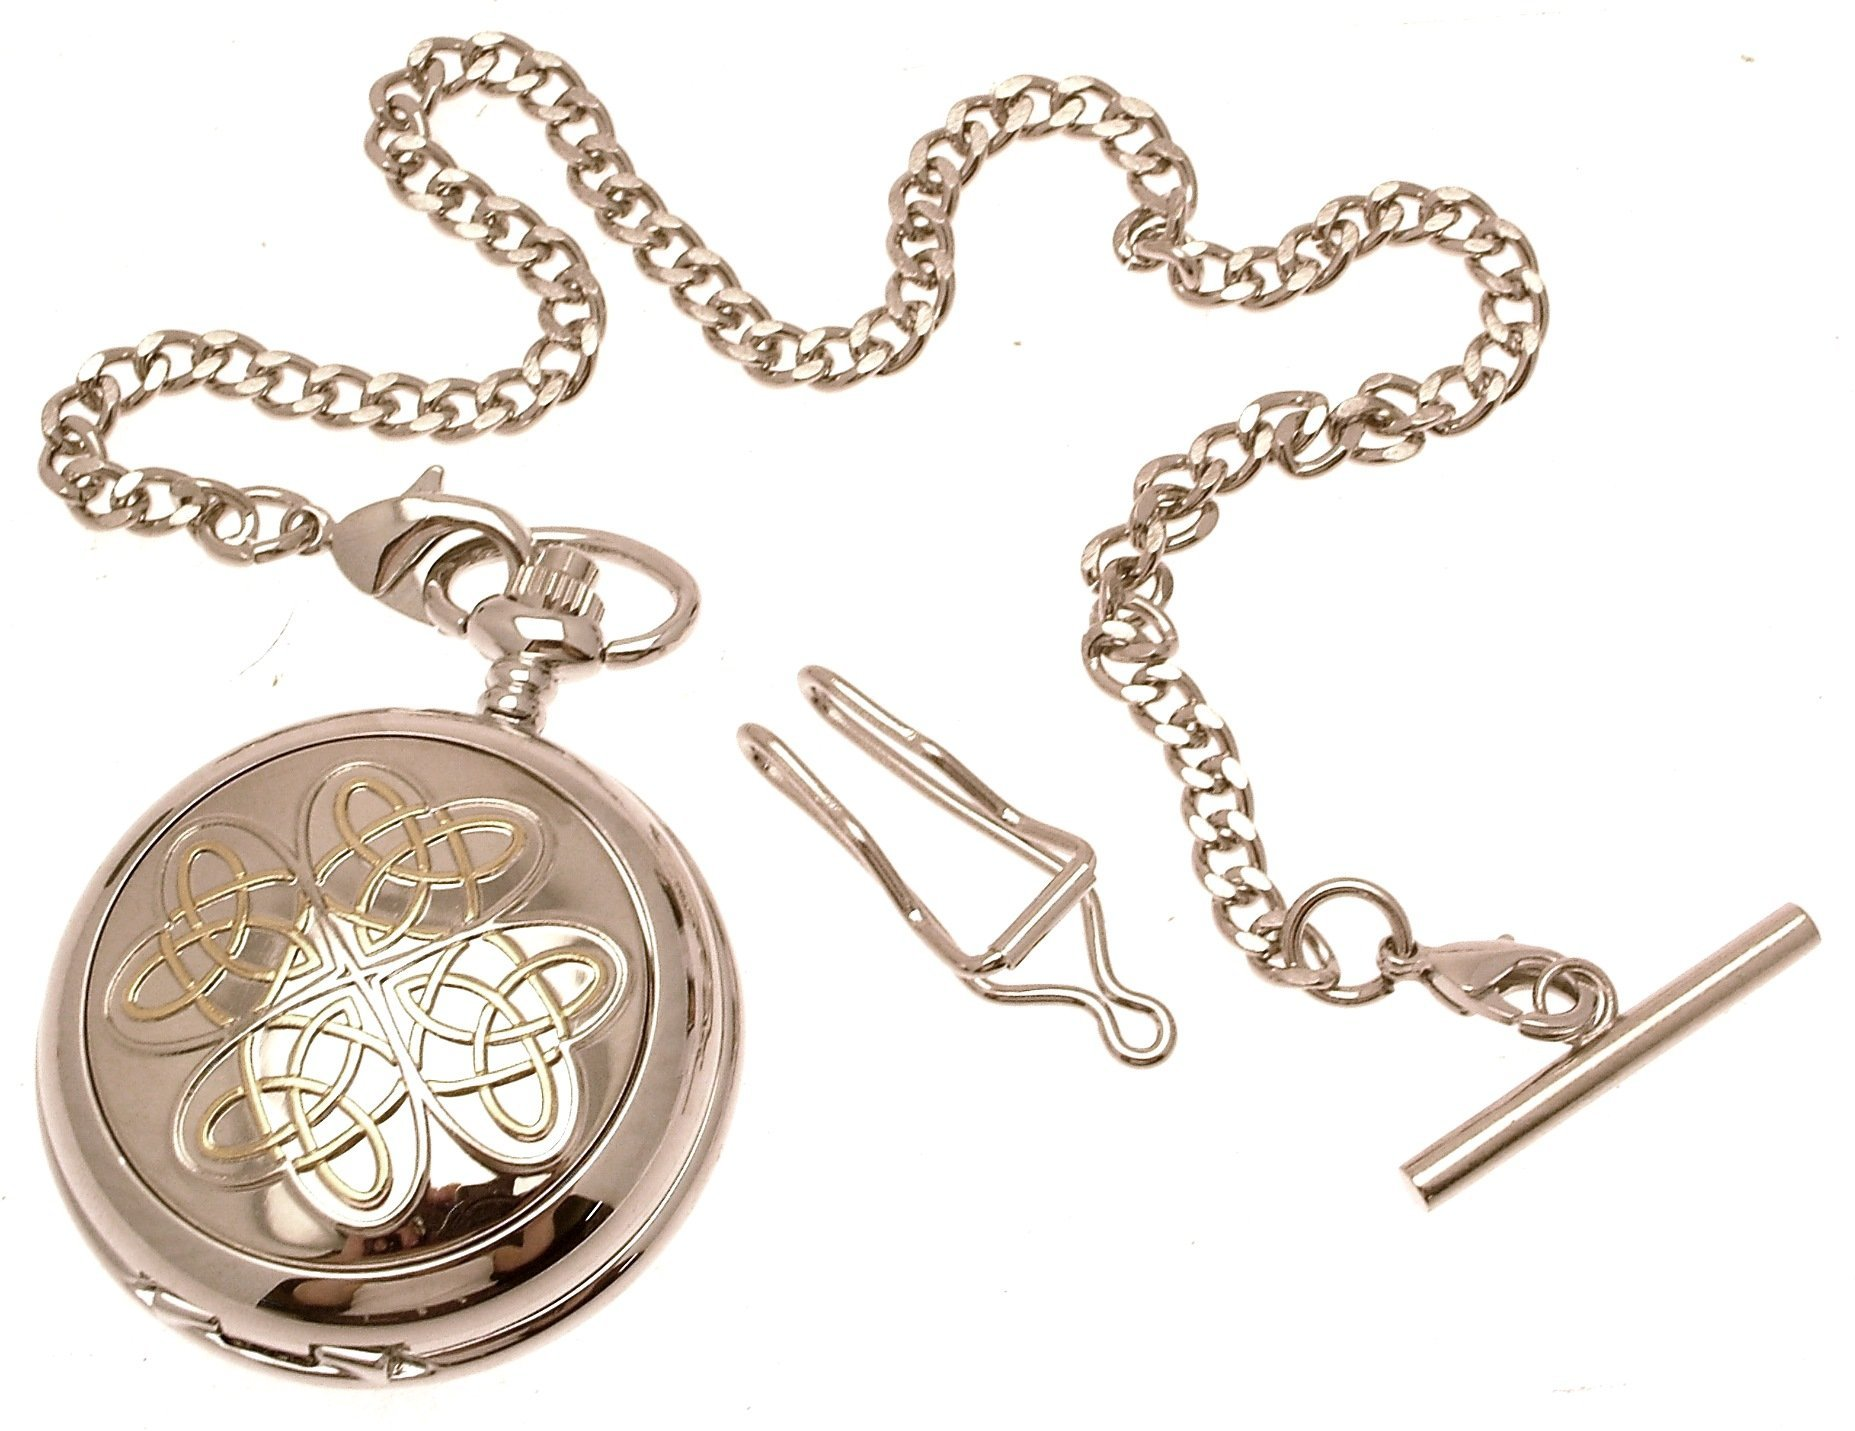 Engraving included - Solid pewter fronted mechanical skeleton pocket watch - Two tone entwined love knot design 9